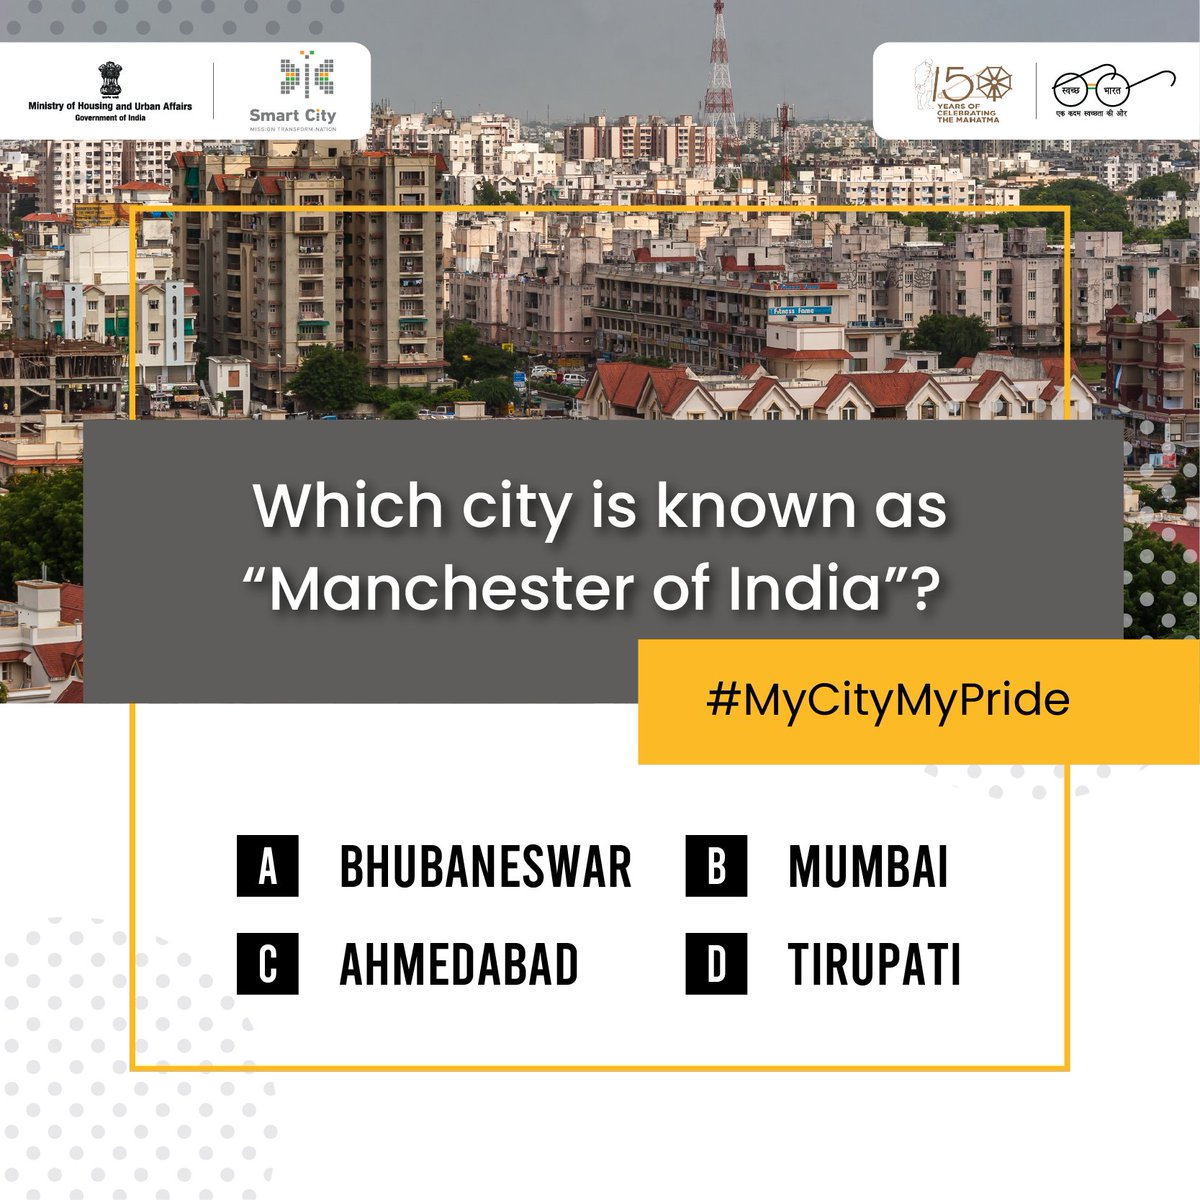 #ContestAlert Participate in the #EaseofLiving2019 survey with #MyCityMyPride. Get rewarded for your honest opinions.  Survey link http://bit.ly/2U6sjk8   Like, share and tag your friends to stand a better chance of winning. @easeofliving19